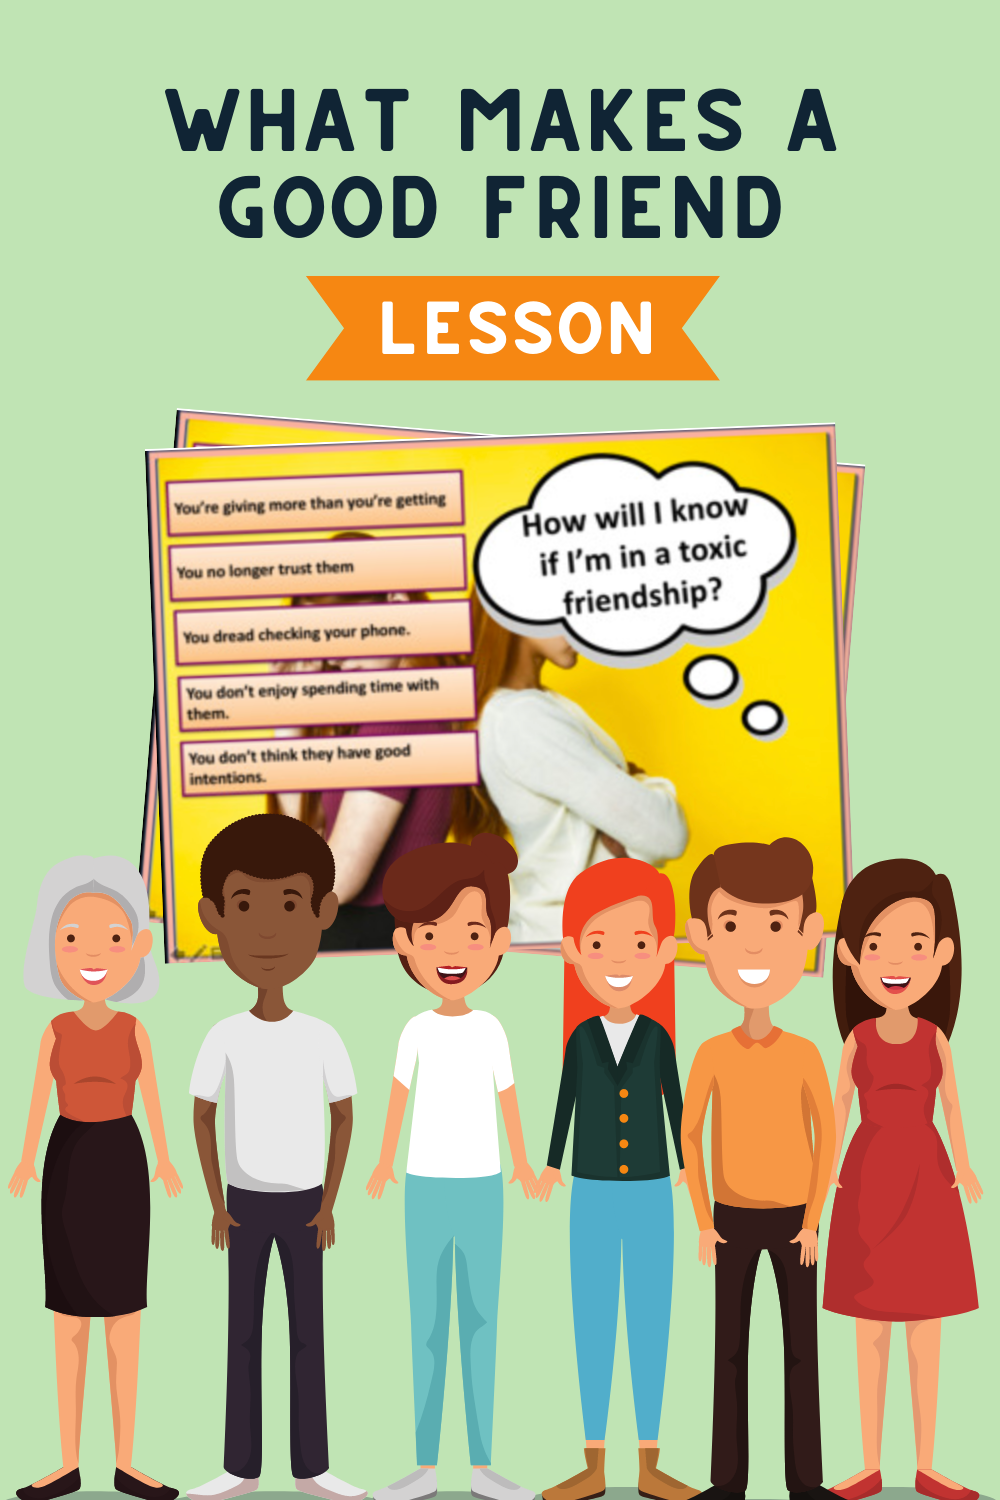 What makes a good friend Lesson - Teaching/Learning Resource